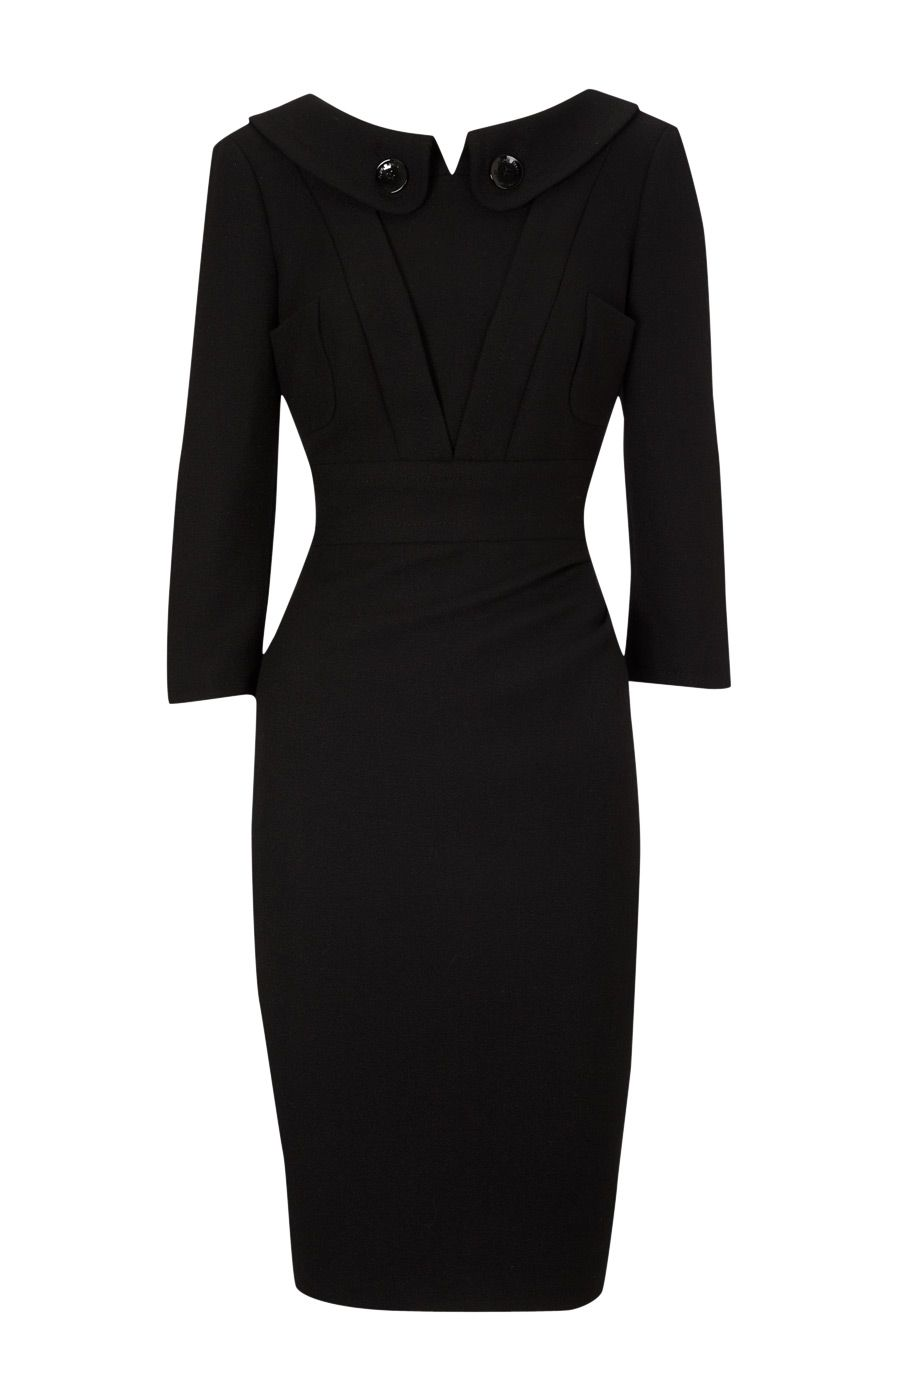 Karen Millen Backless Crepe Coat Dress Black - Jewelry-Gemstone,Pearl,Crystal,Gem -Eastern Gift